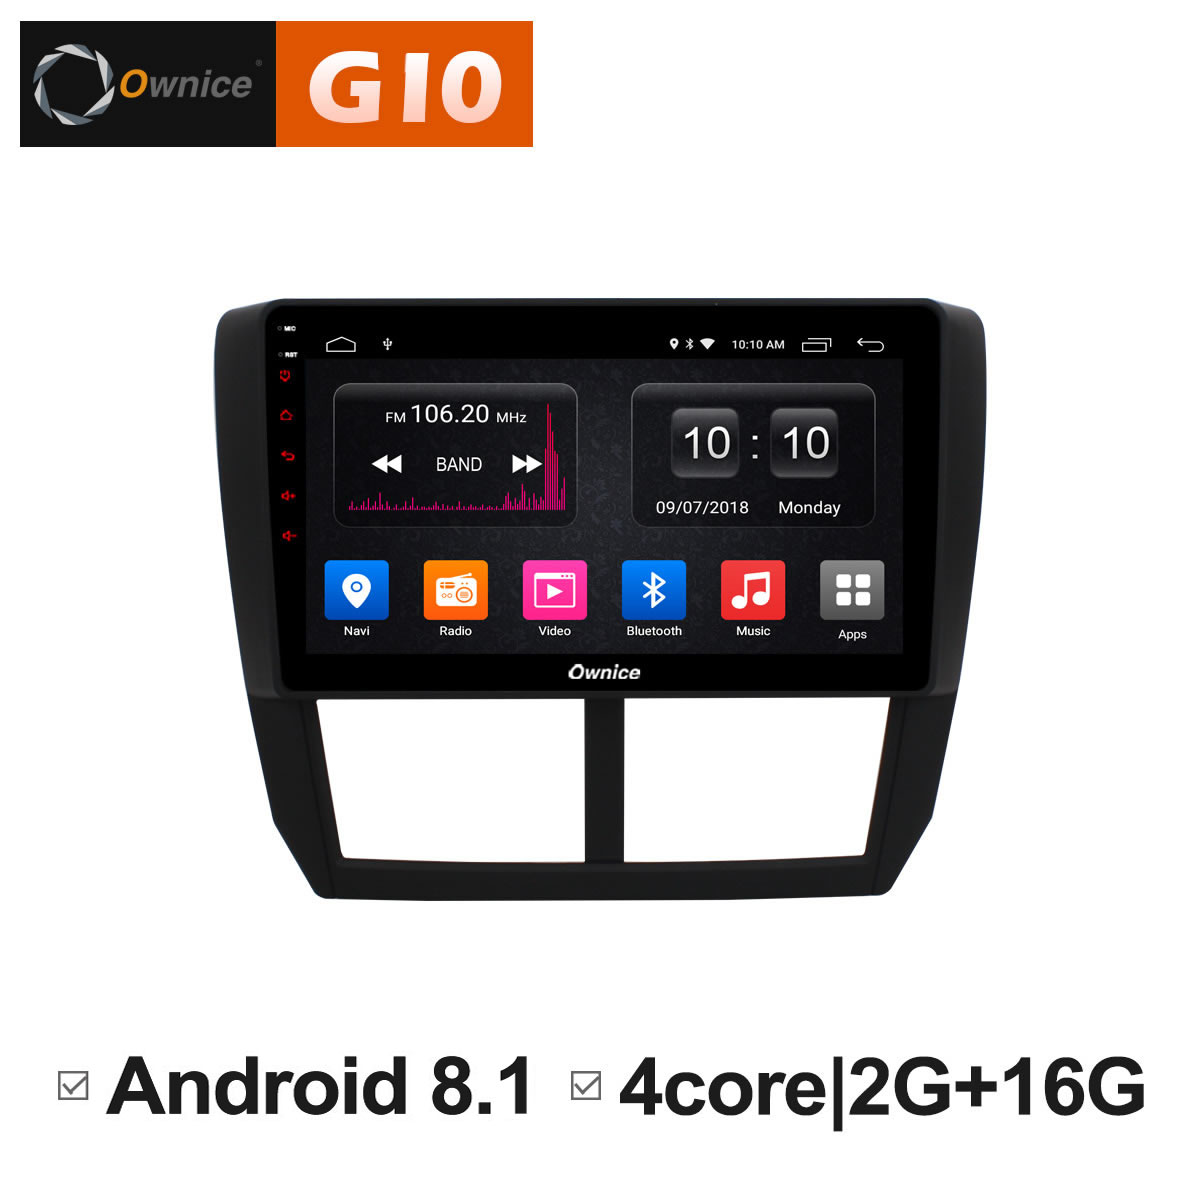 Ownice C500 + G10 Octa 8 Core Android 8.1 2g RAM Voiture DVD GPS Navi Lecteur Radio Pour Subaru forester XV WRX 2008 2009-2012 DAB +